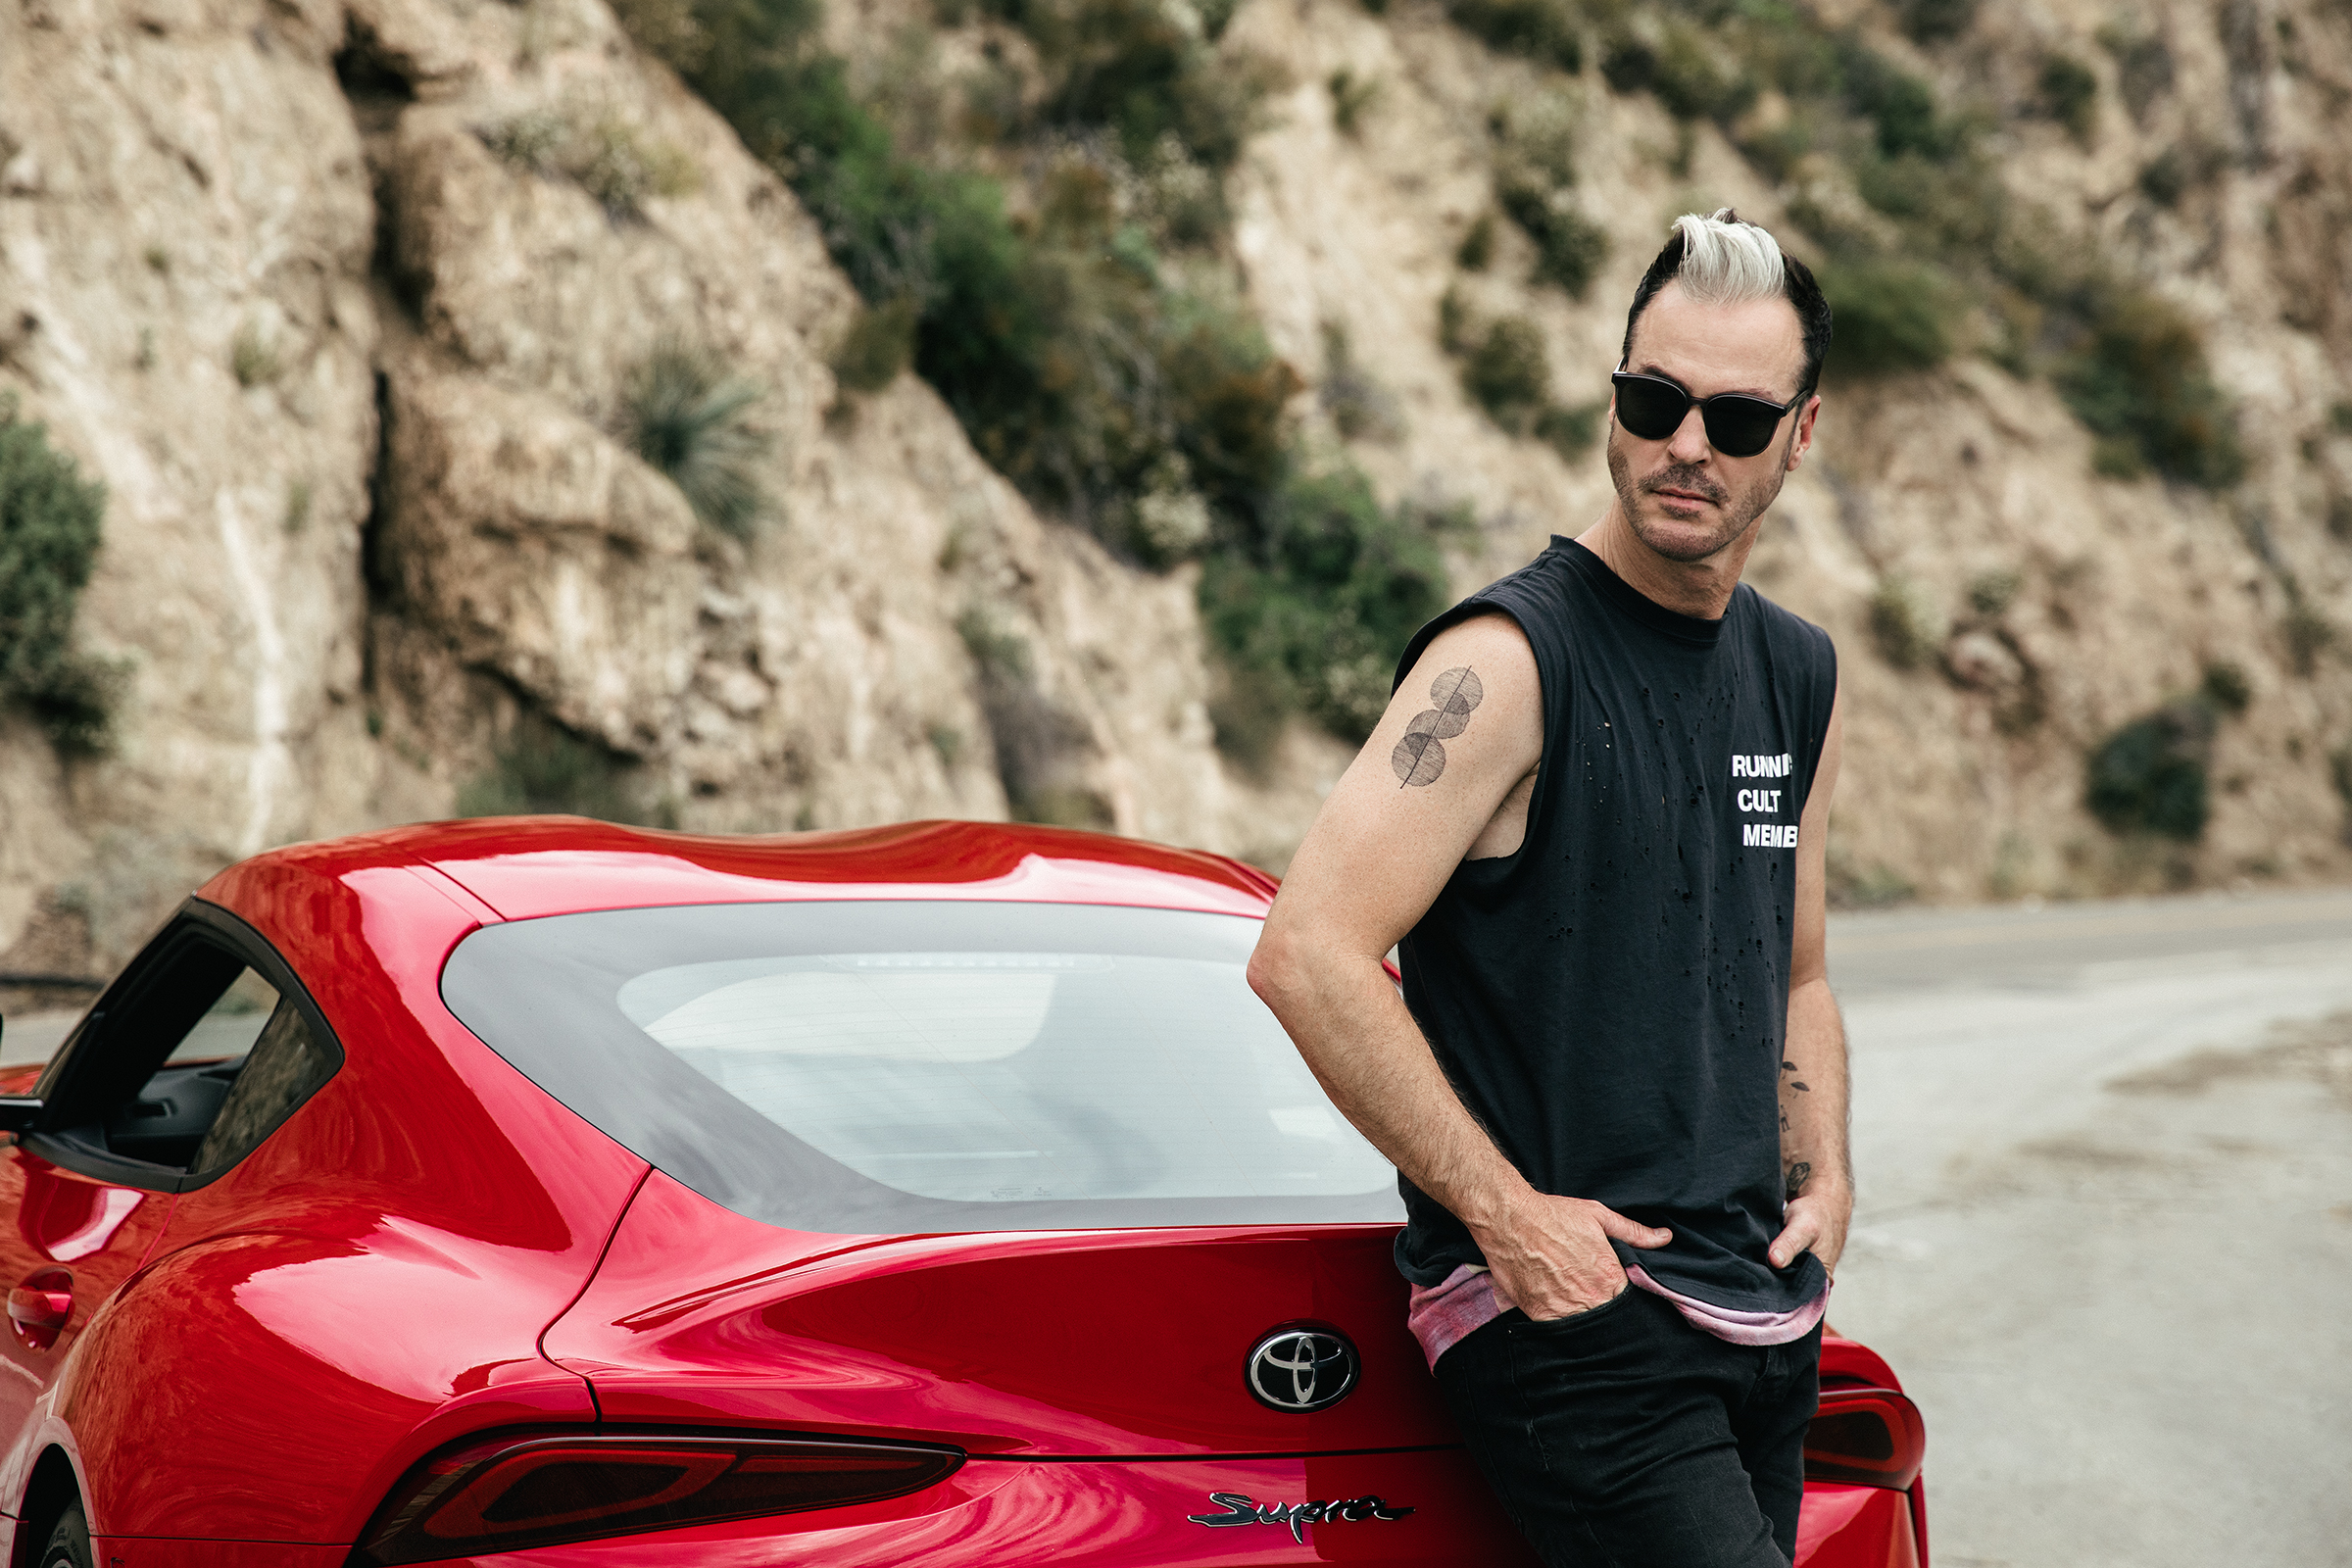 Michael Fitzpatrick of Fitz and the Tantrums in 2020 Toyota